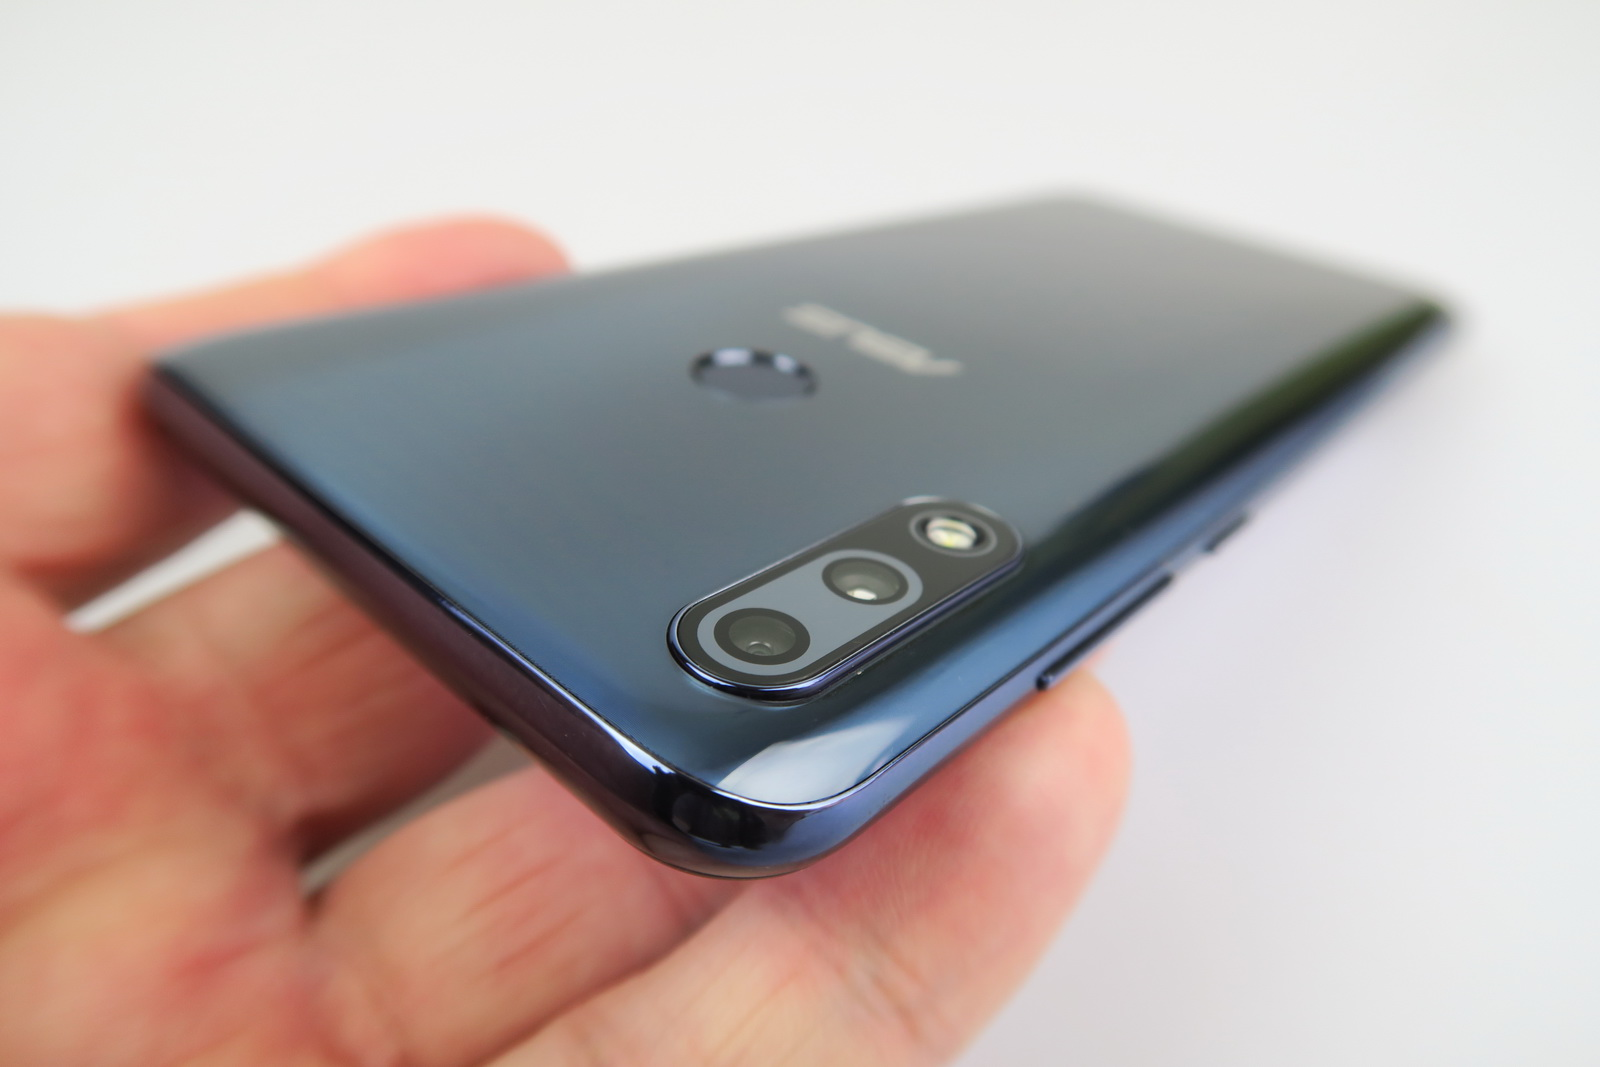 ASUS ZenFone Max Pro (M2): Baterie de campion, peste predecesor la playback video